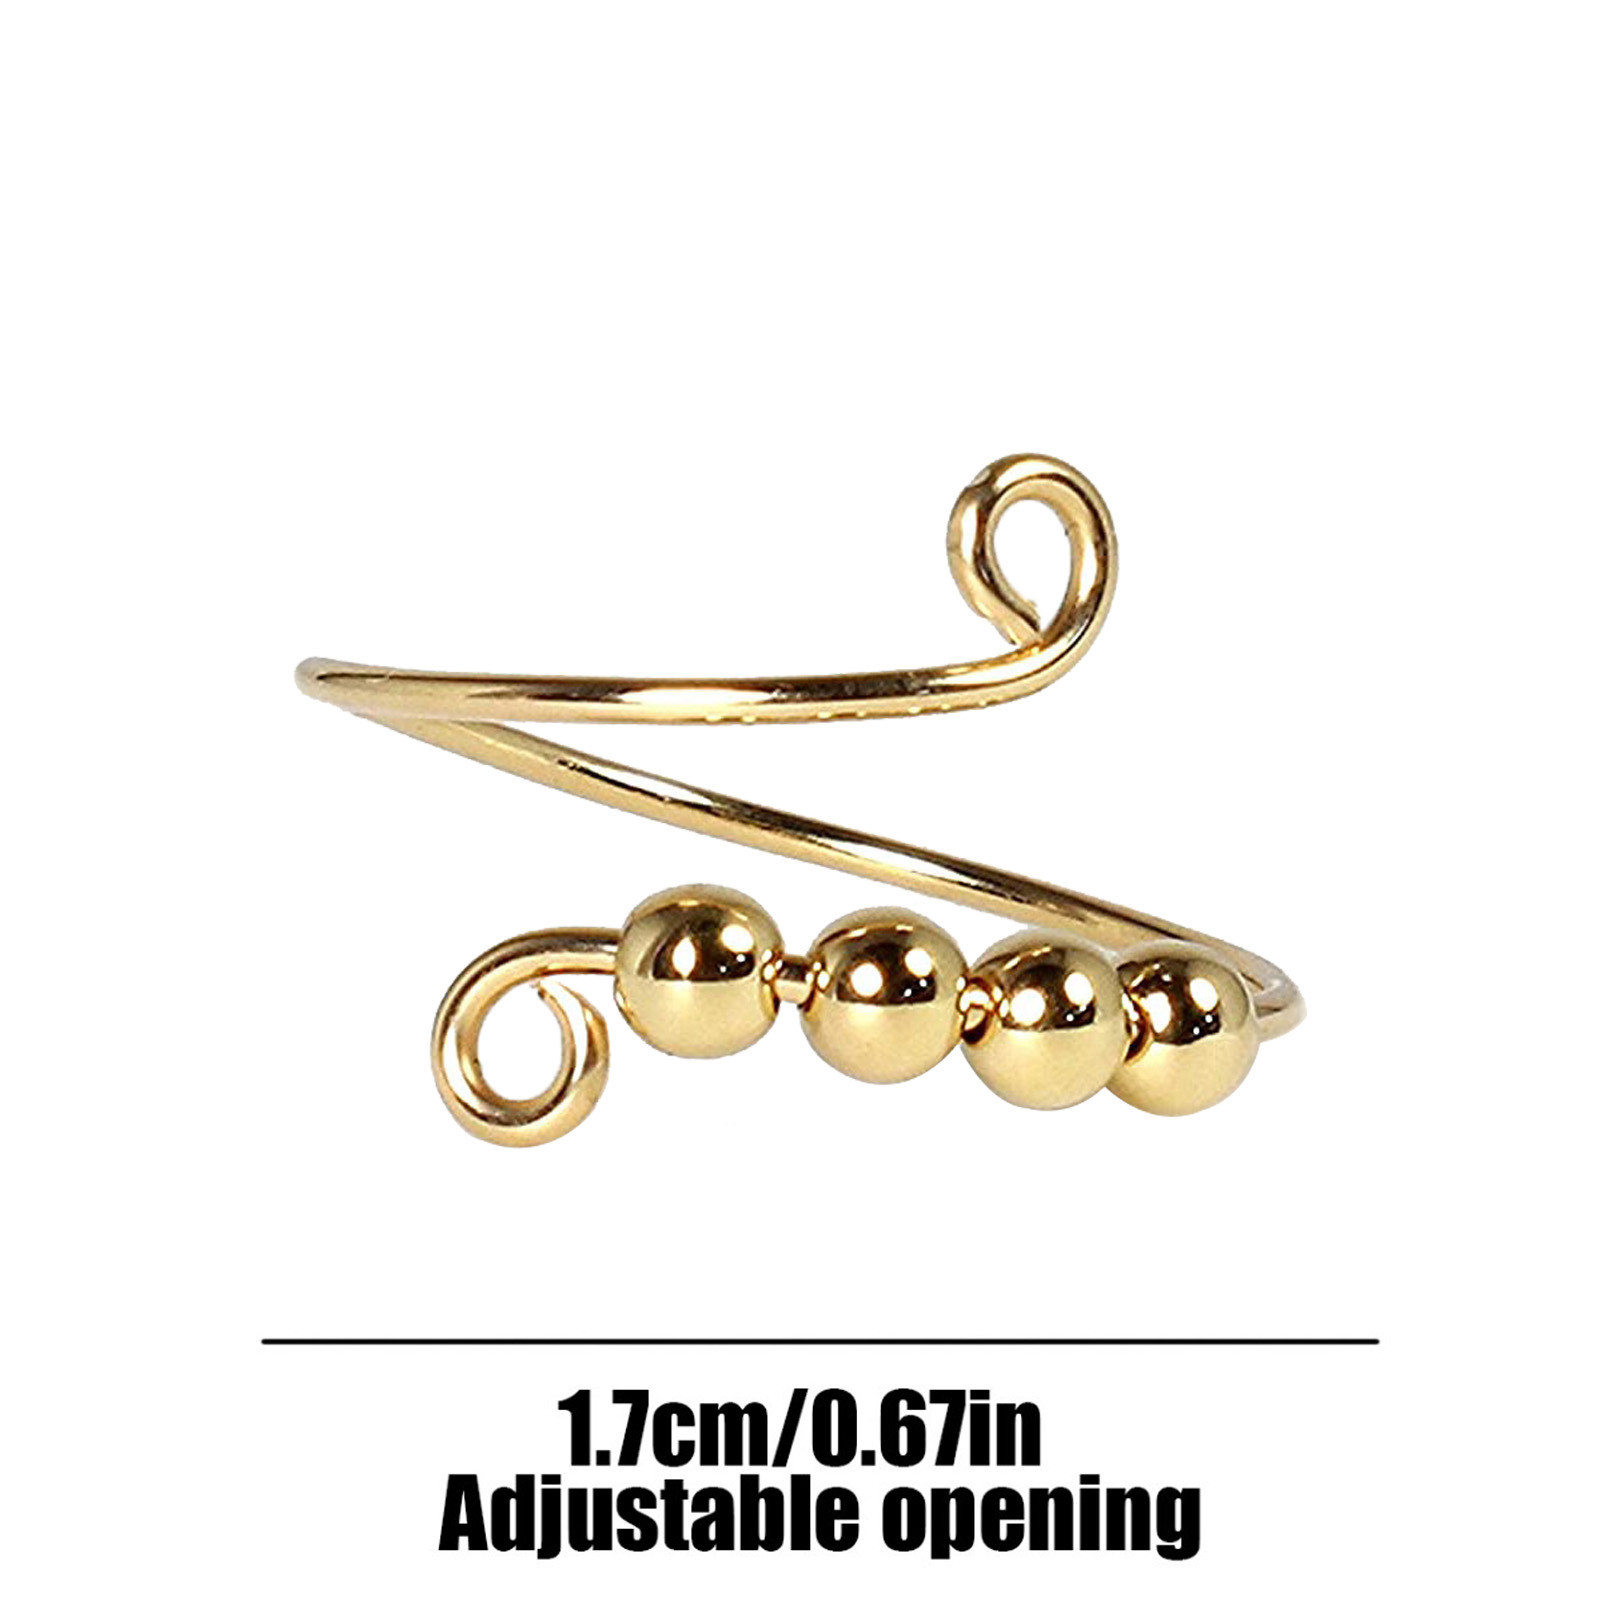 Toy Ring-Beads Fidget-Ring Freely Stress Spiral-Anxiety Rotate Reliever Fingertip Knitting img3